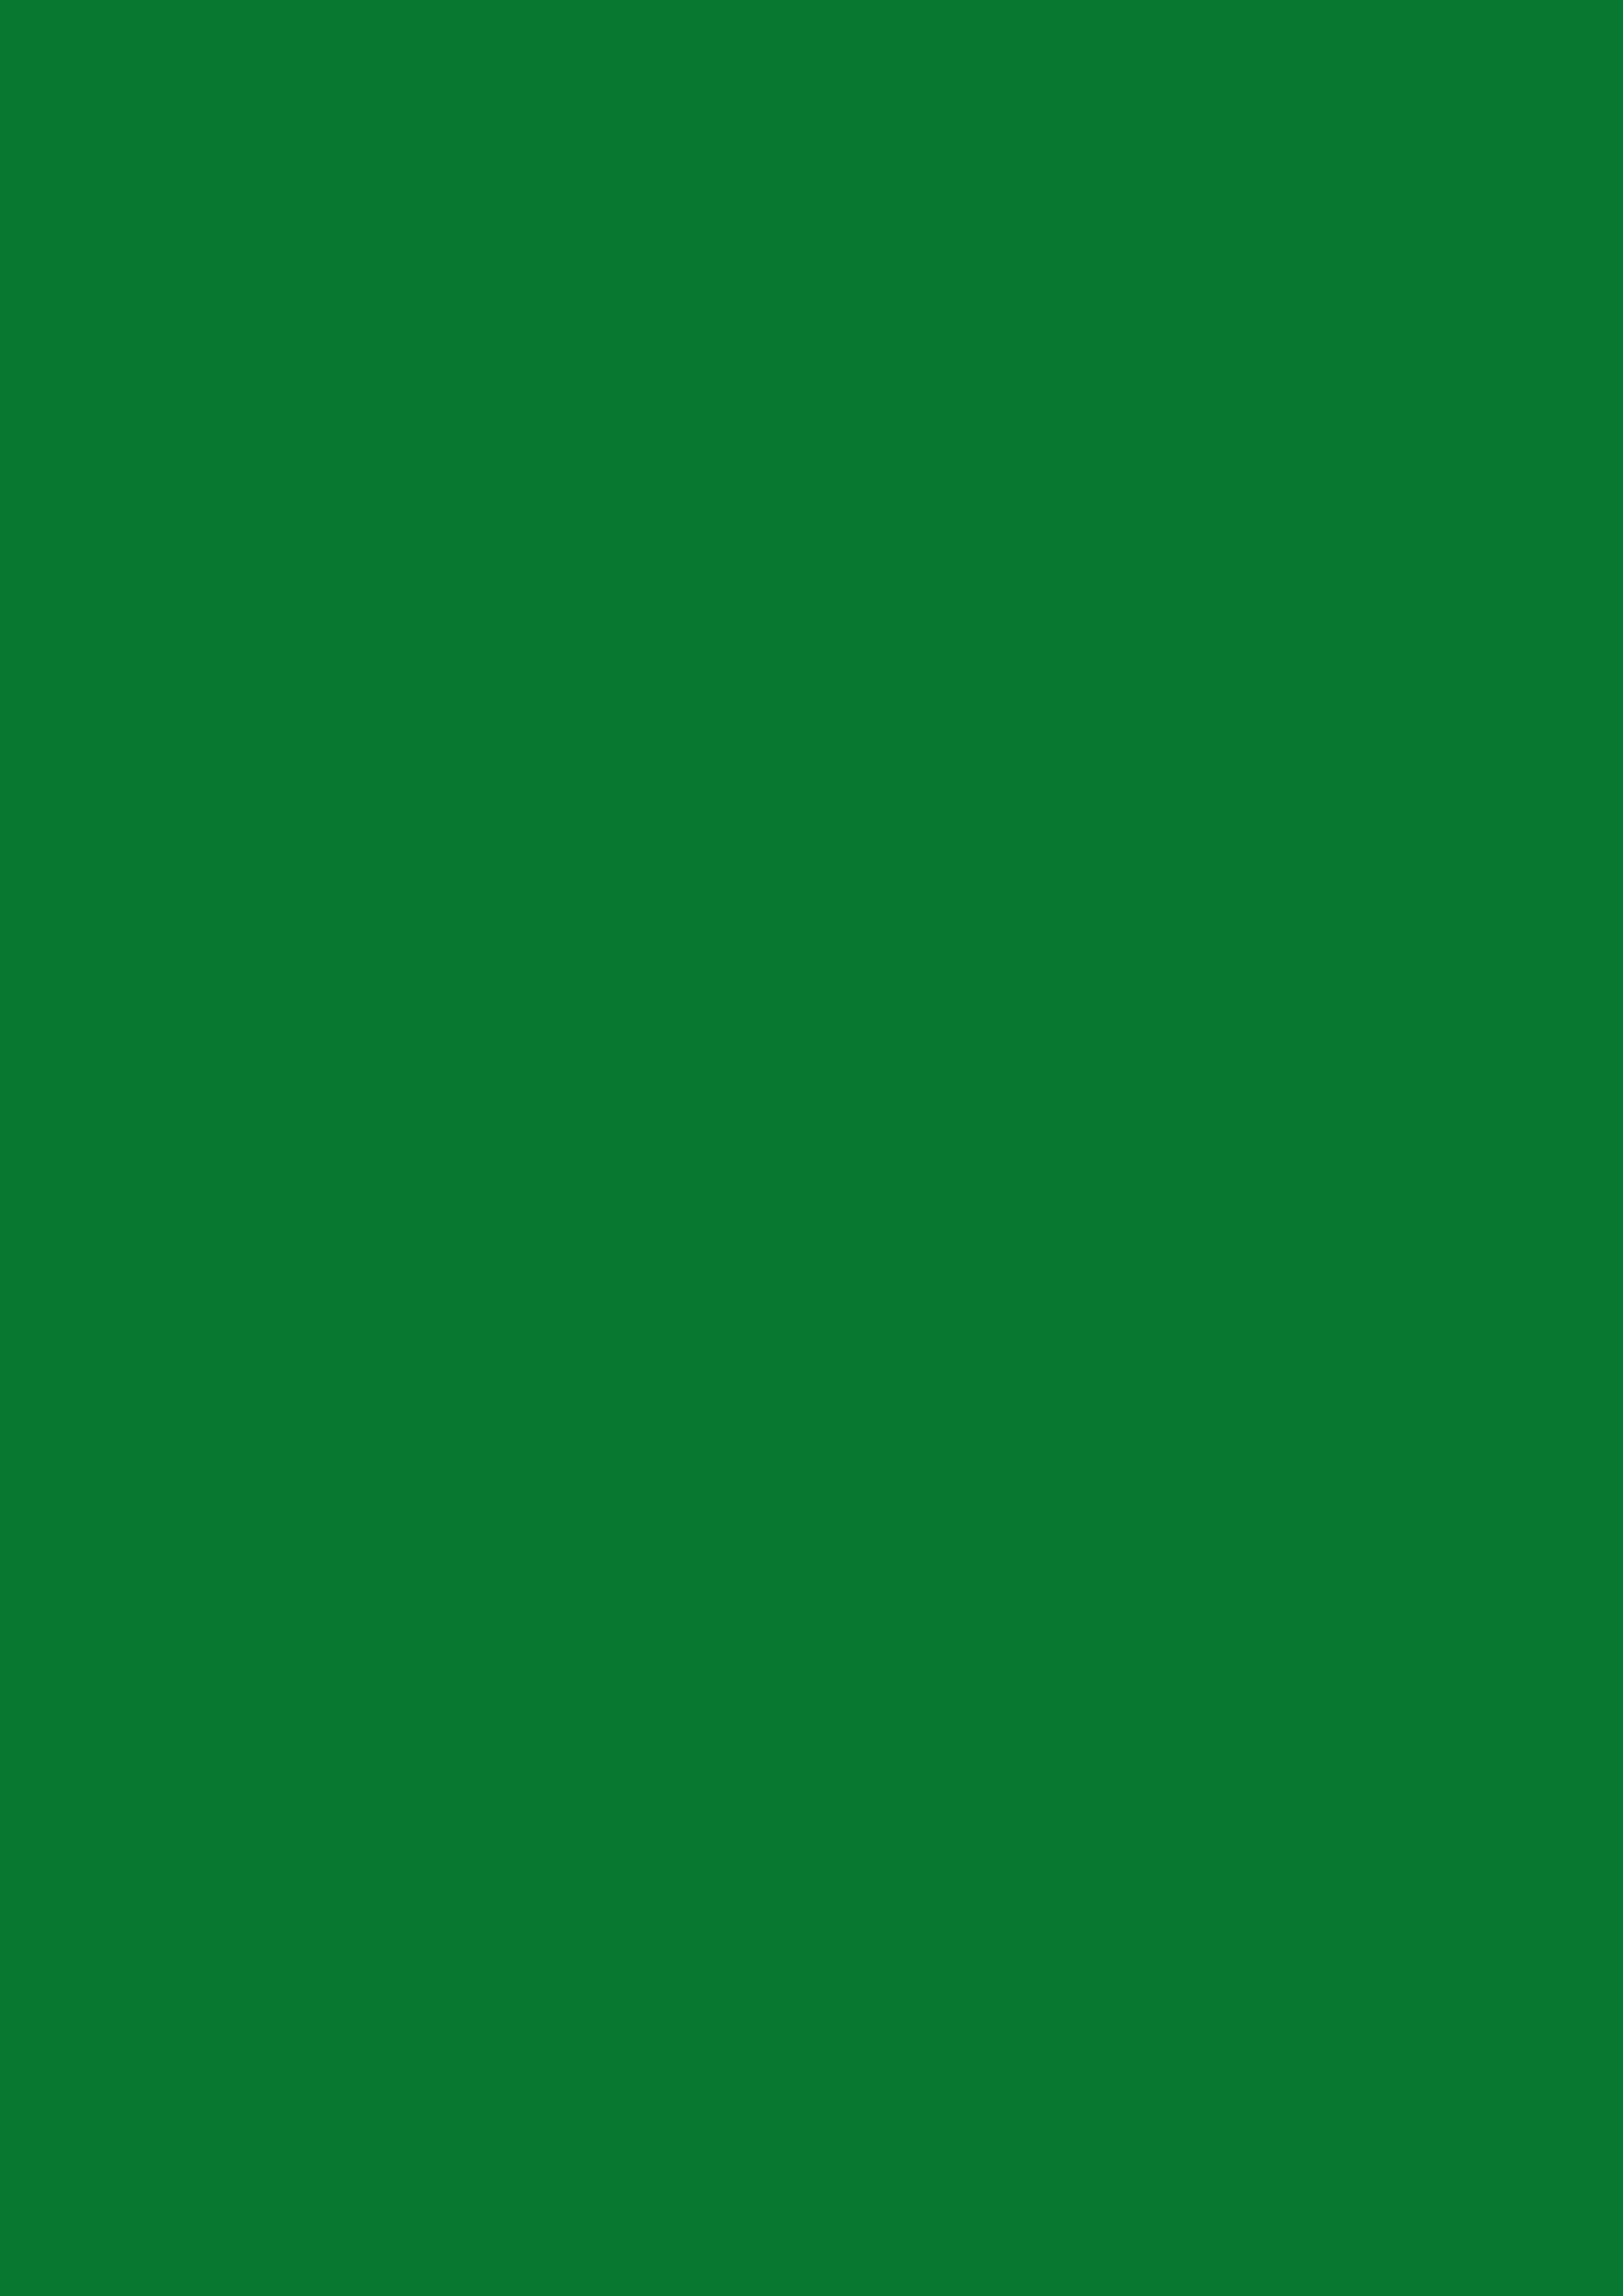 2480x3508 La Salle Green Solid Color Background